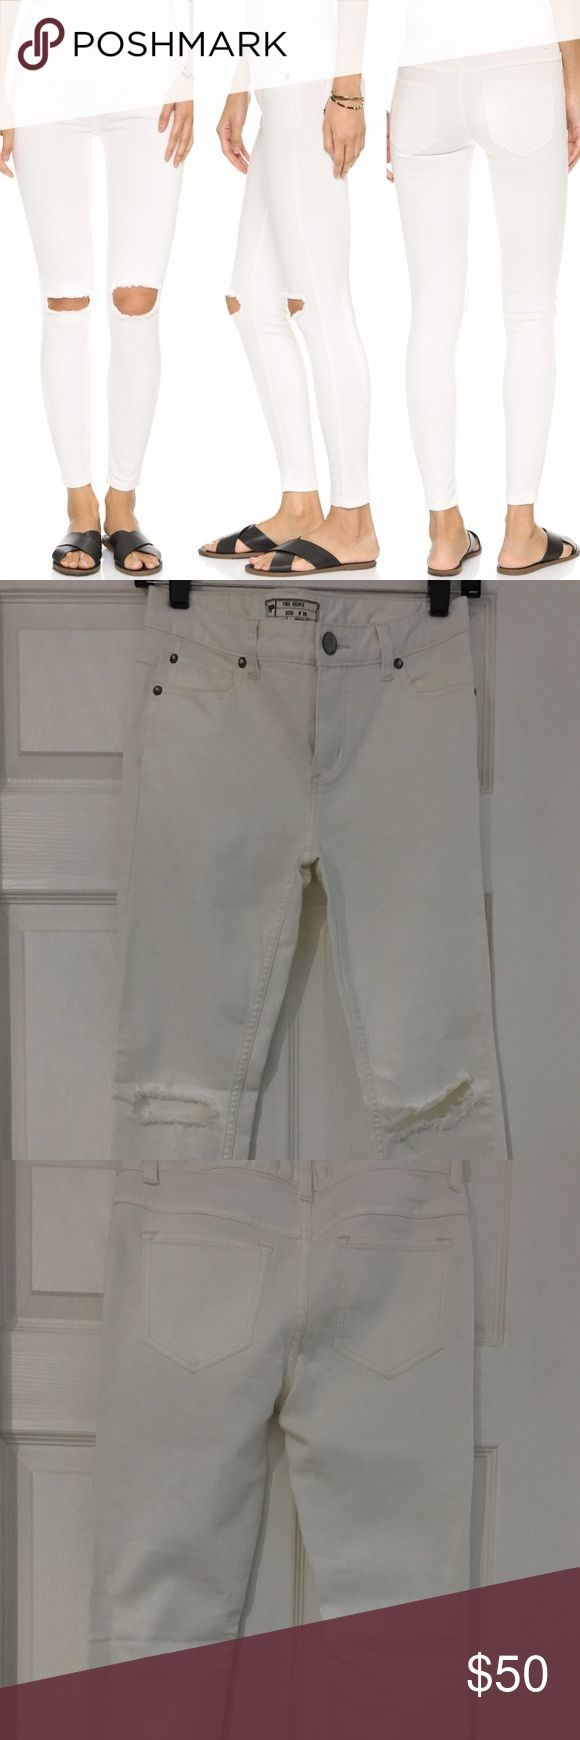 Free People white ripped jeans Free People white ripped jeans. size 26w.  Never been worn, notice stain in last picture- I bought them like that, dirt from the store. I'm sure one wash will do the trick. No flaws! Free People Pants Skinny